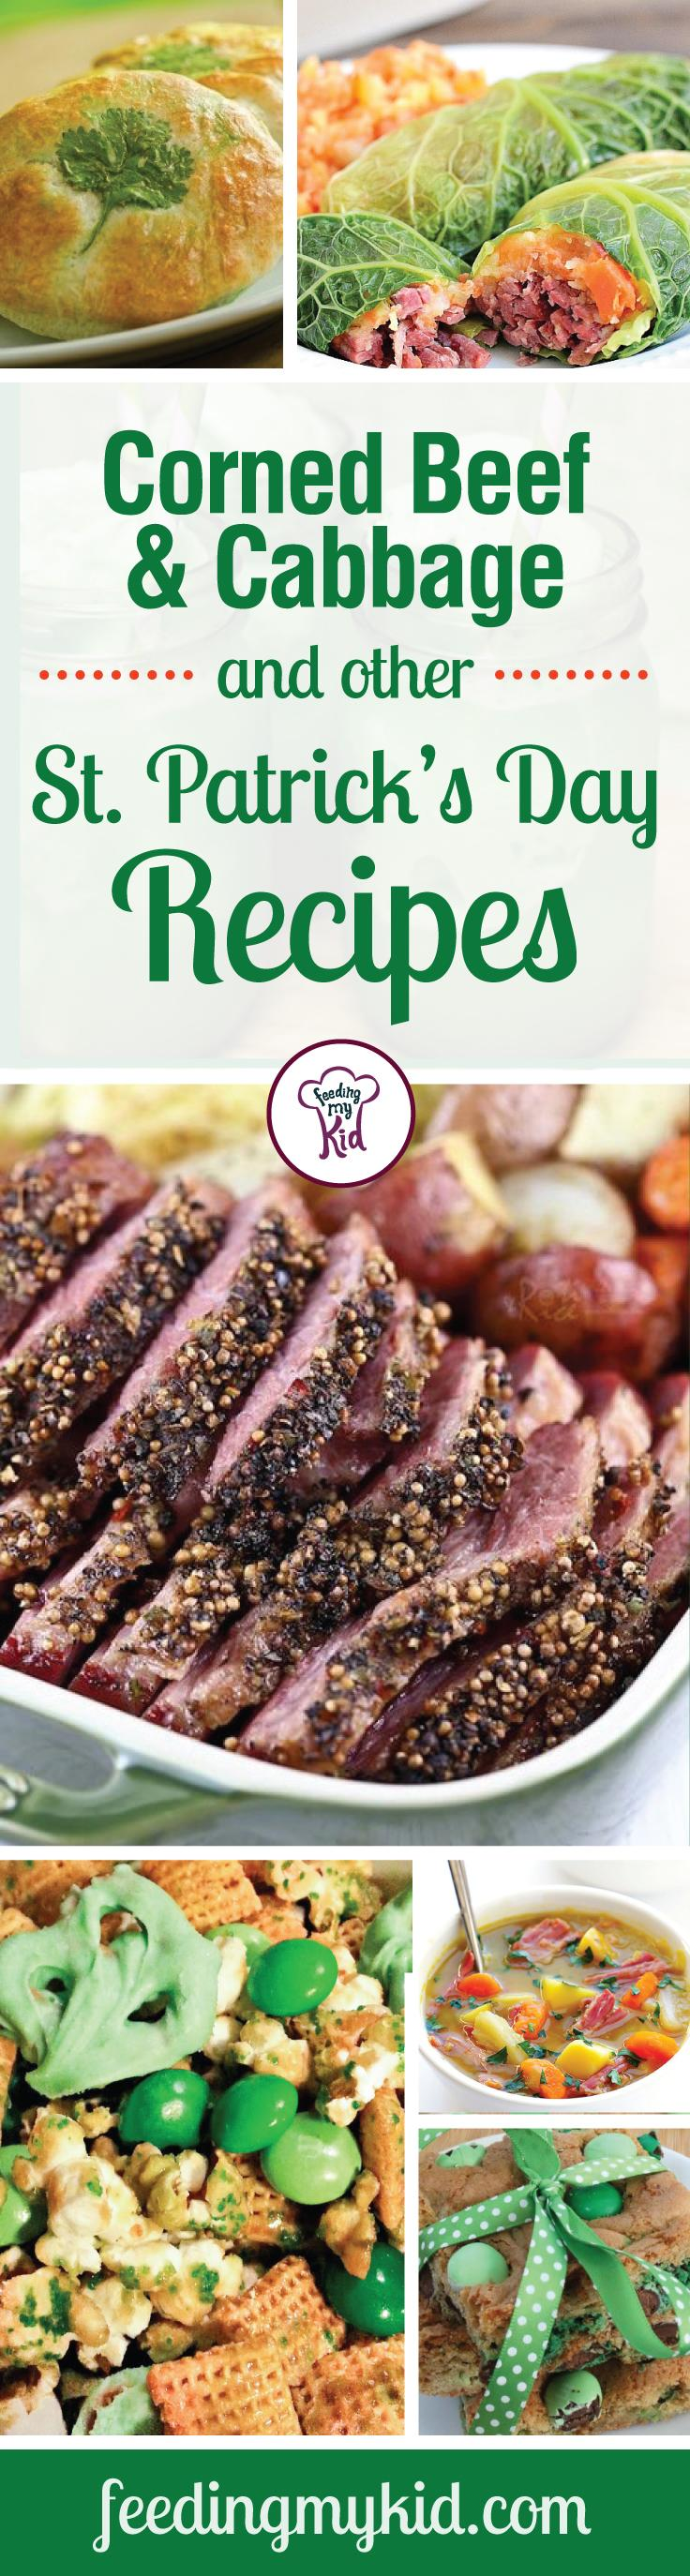 Corned Beef and Cabbage and Other St. Patrick's Day Recipes - Show some Irish spirit by not only wearing green, but by cooking up these Irish-inspired recipes. From corned beef and cabbage quesadillas to an Irish breakfast wrap. Show your Irish spirit this season by exploring some new avenues of cooking and diving into these wonderful recipes.